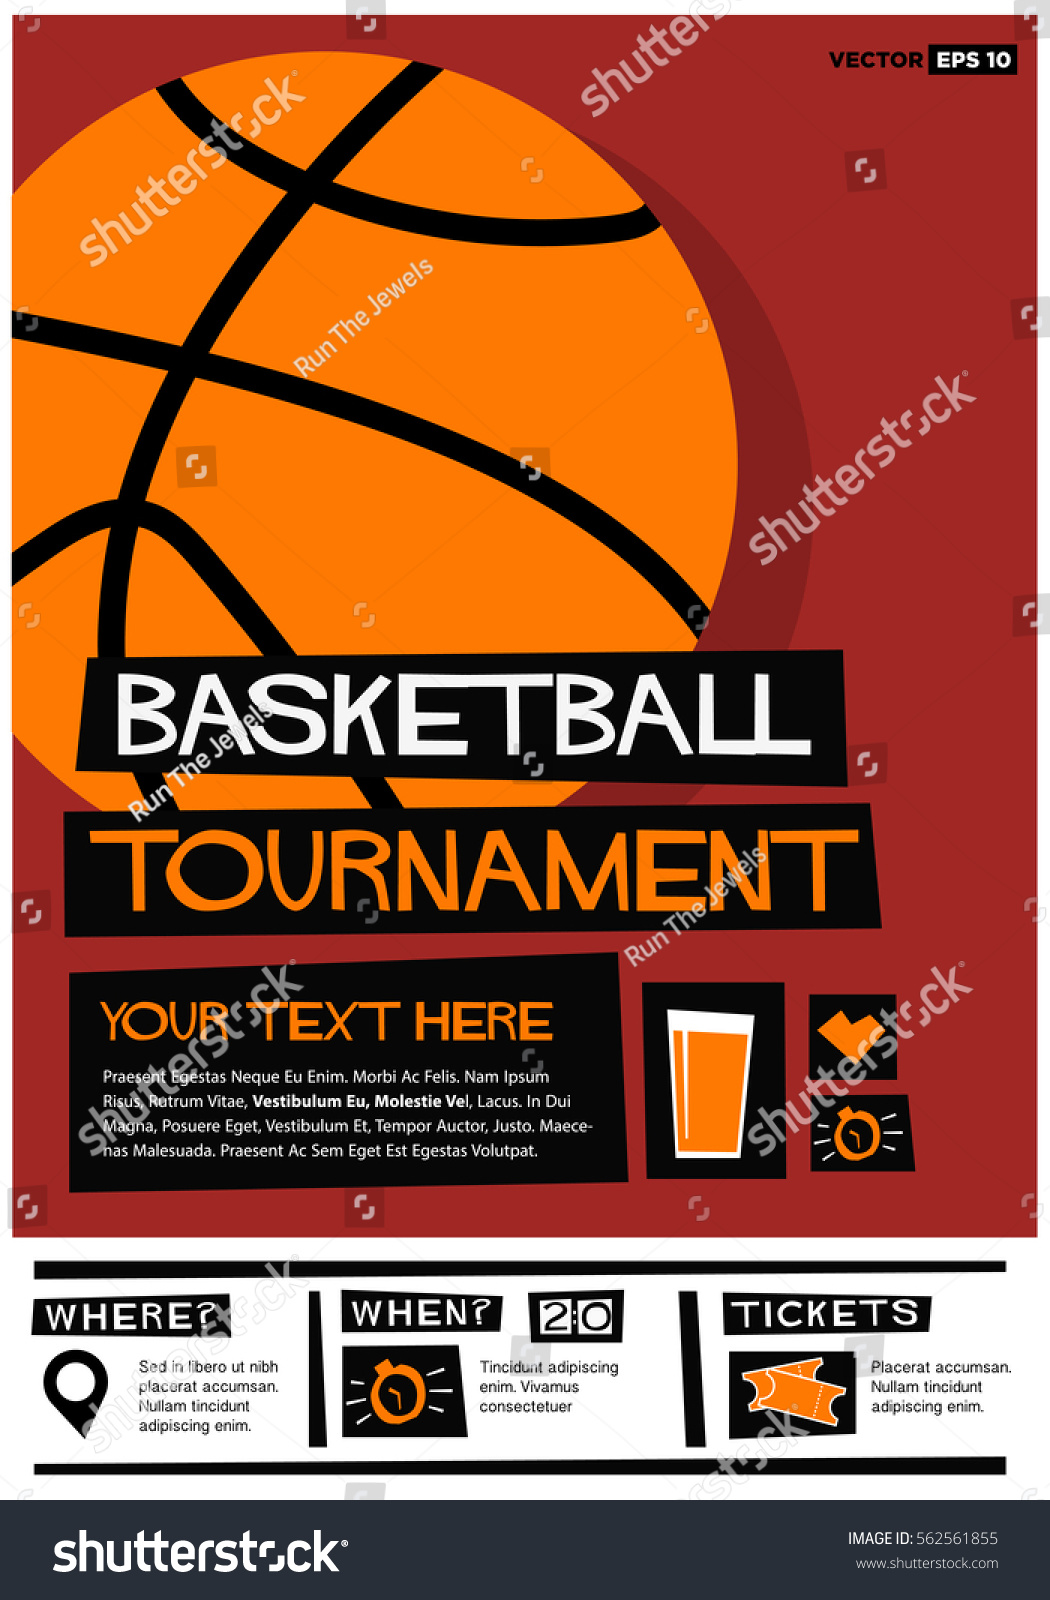 Basketball Tournament Flat Style Vector Ilration Sports Poster Design Event  Invitation With Venue And